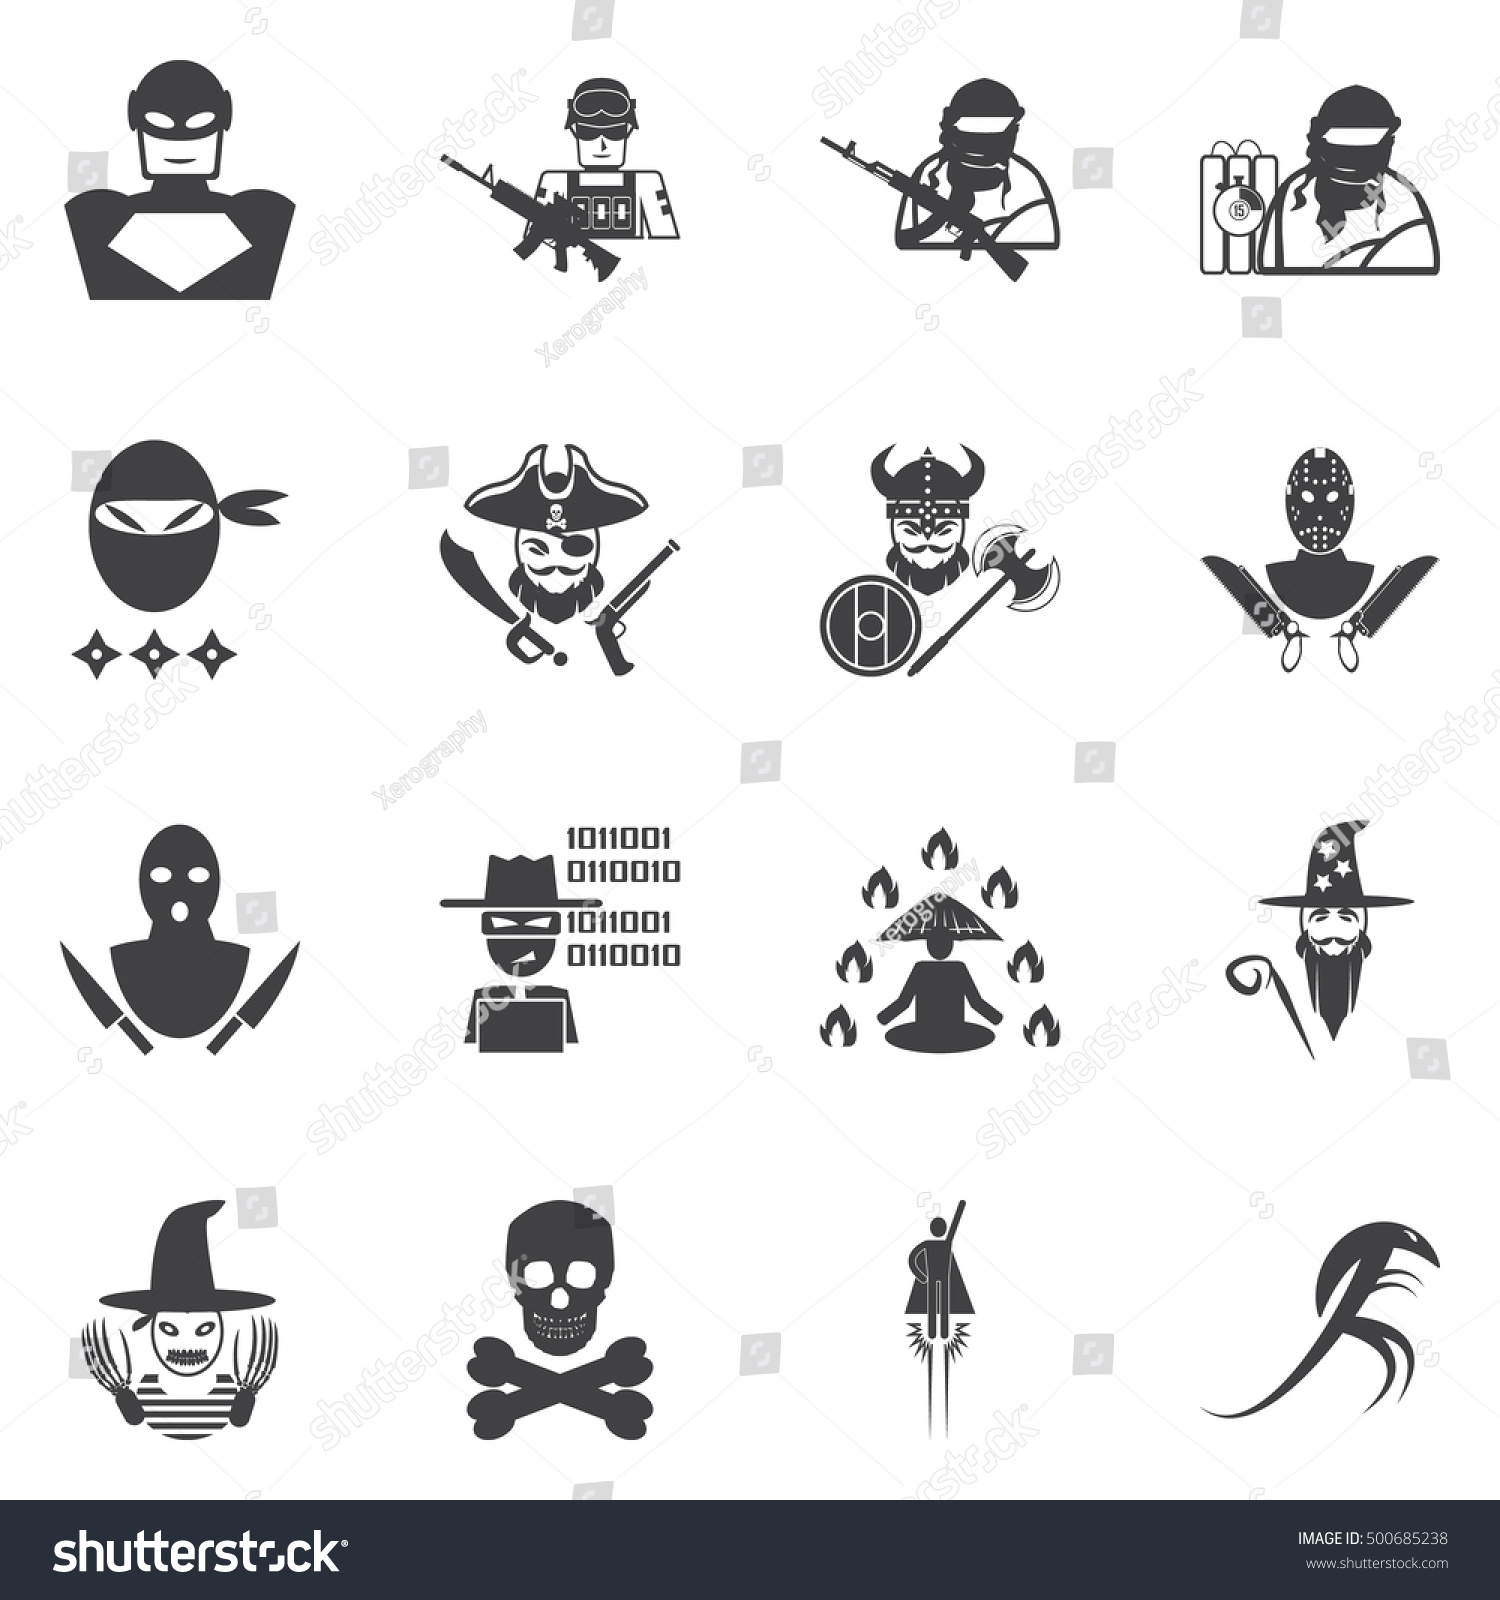 Ancient warrior character good alliance icon stock vector ancient warrior character for good alliance icon symbol sign biocorpaavc Gallery